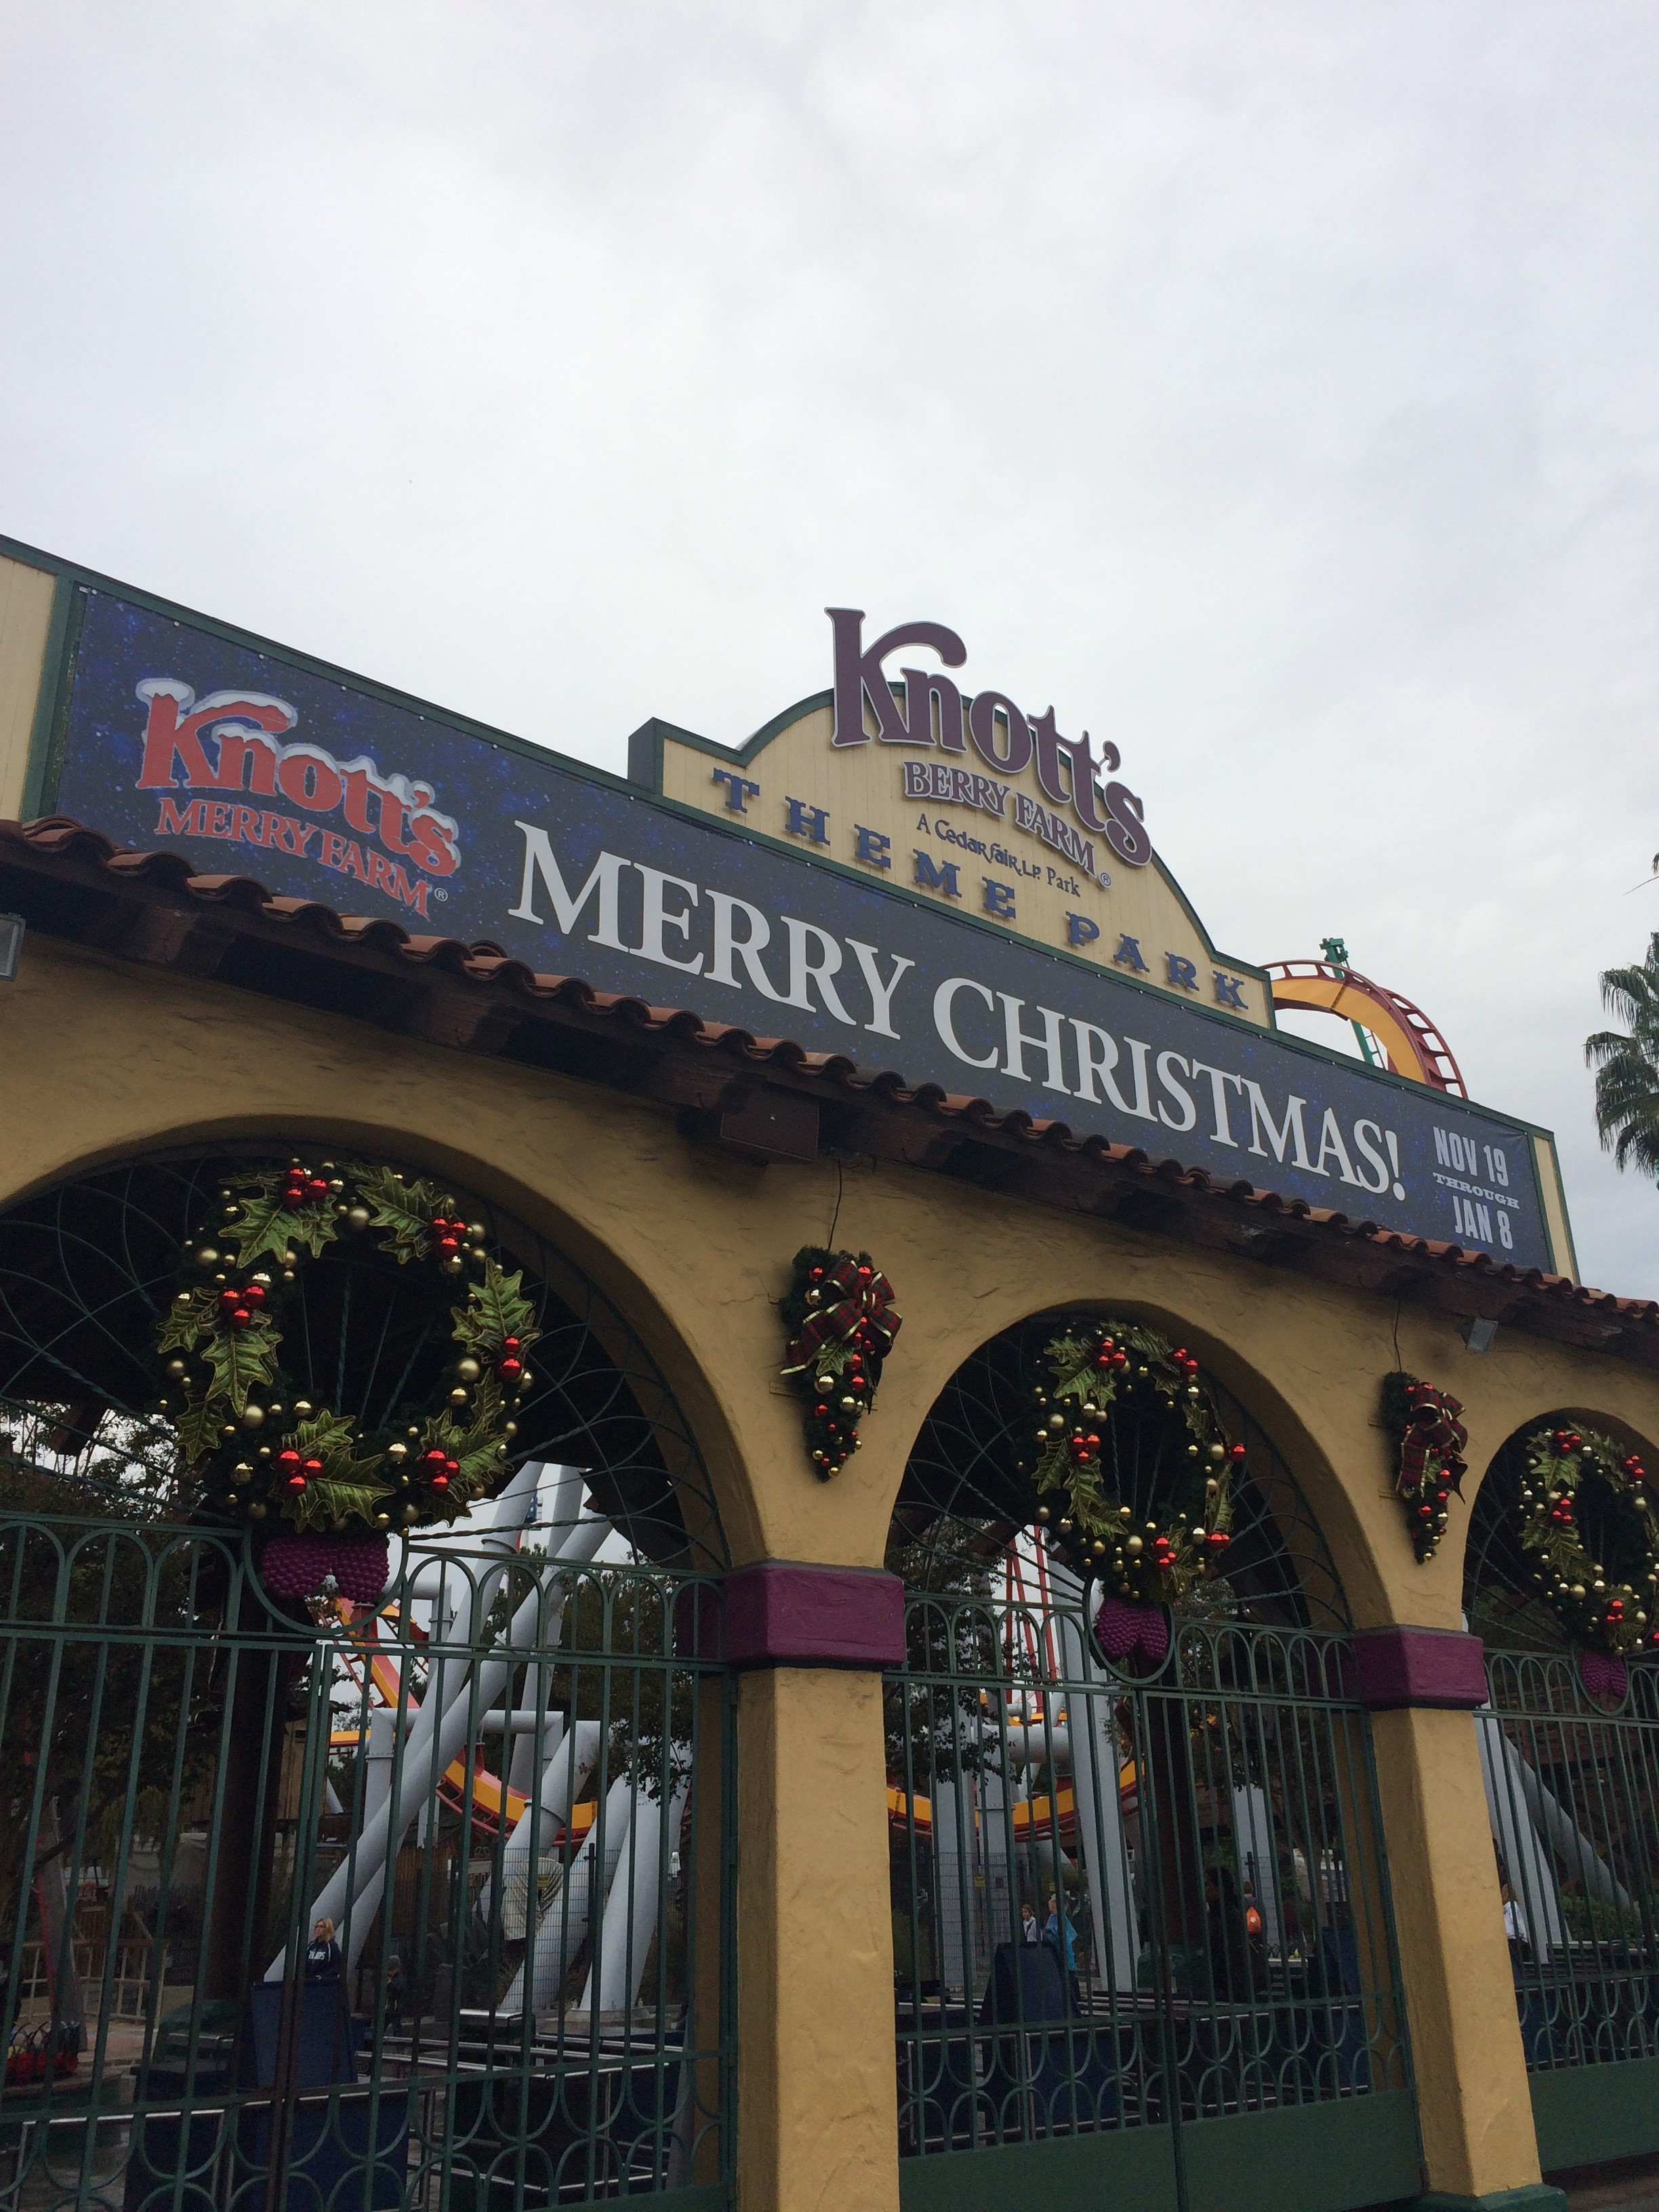 The Knott's Merry Farm entrance on an overcast day (c) Ken Pellman